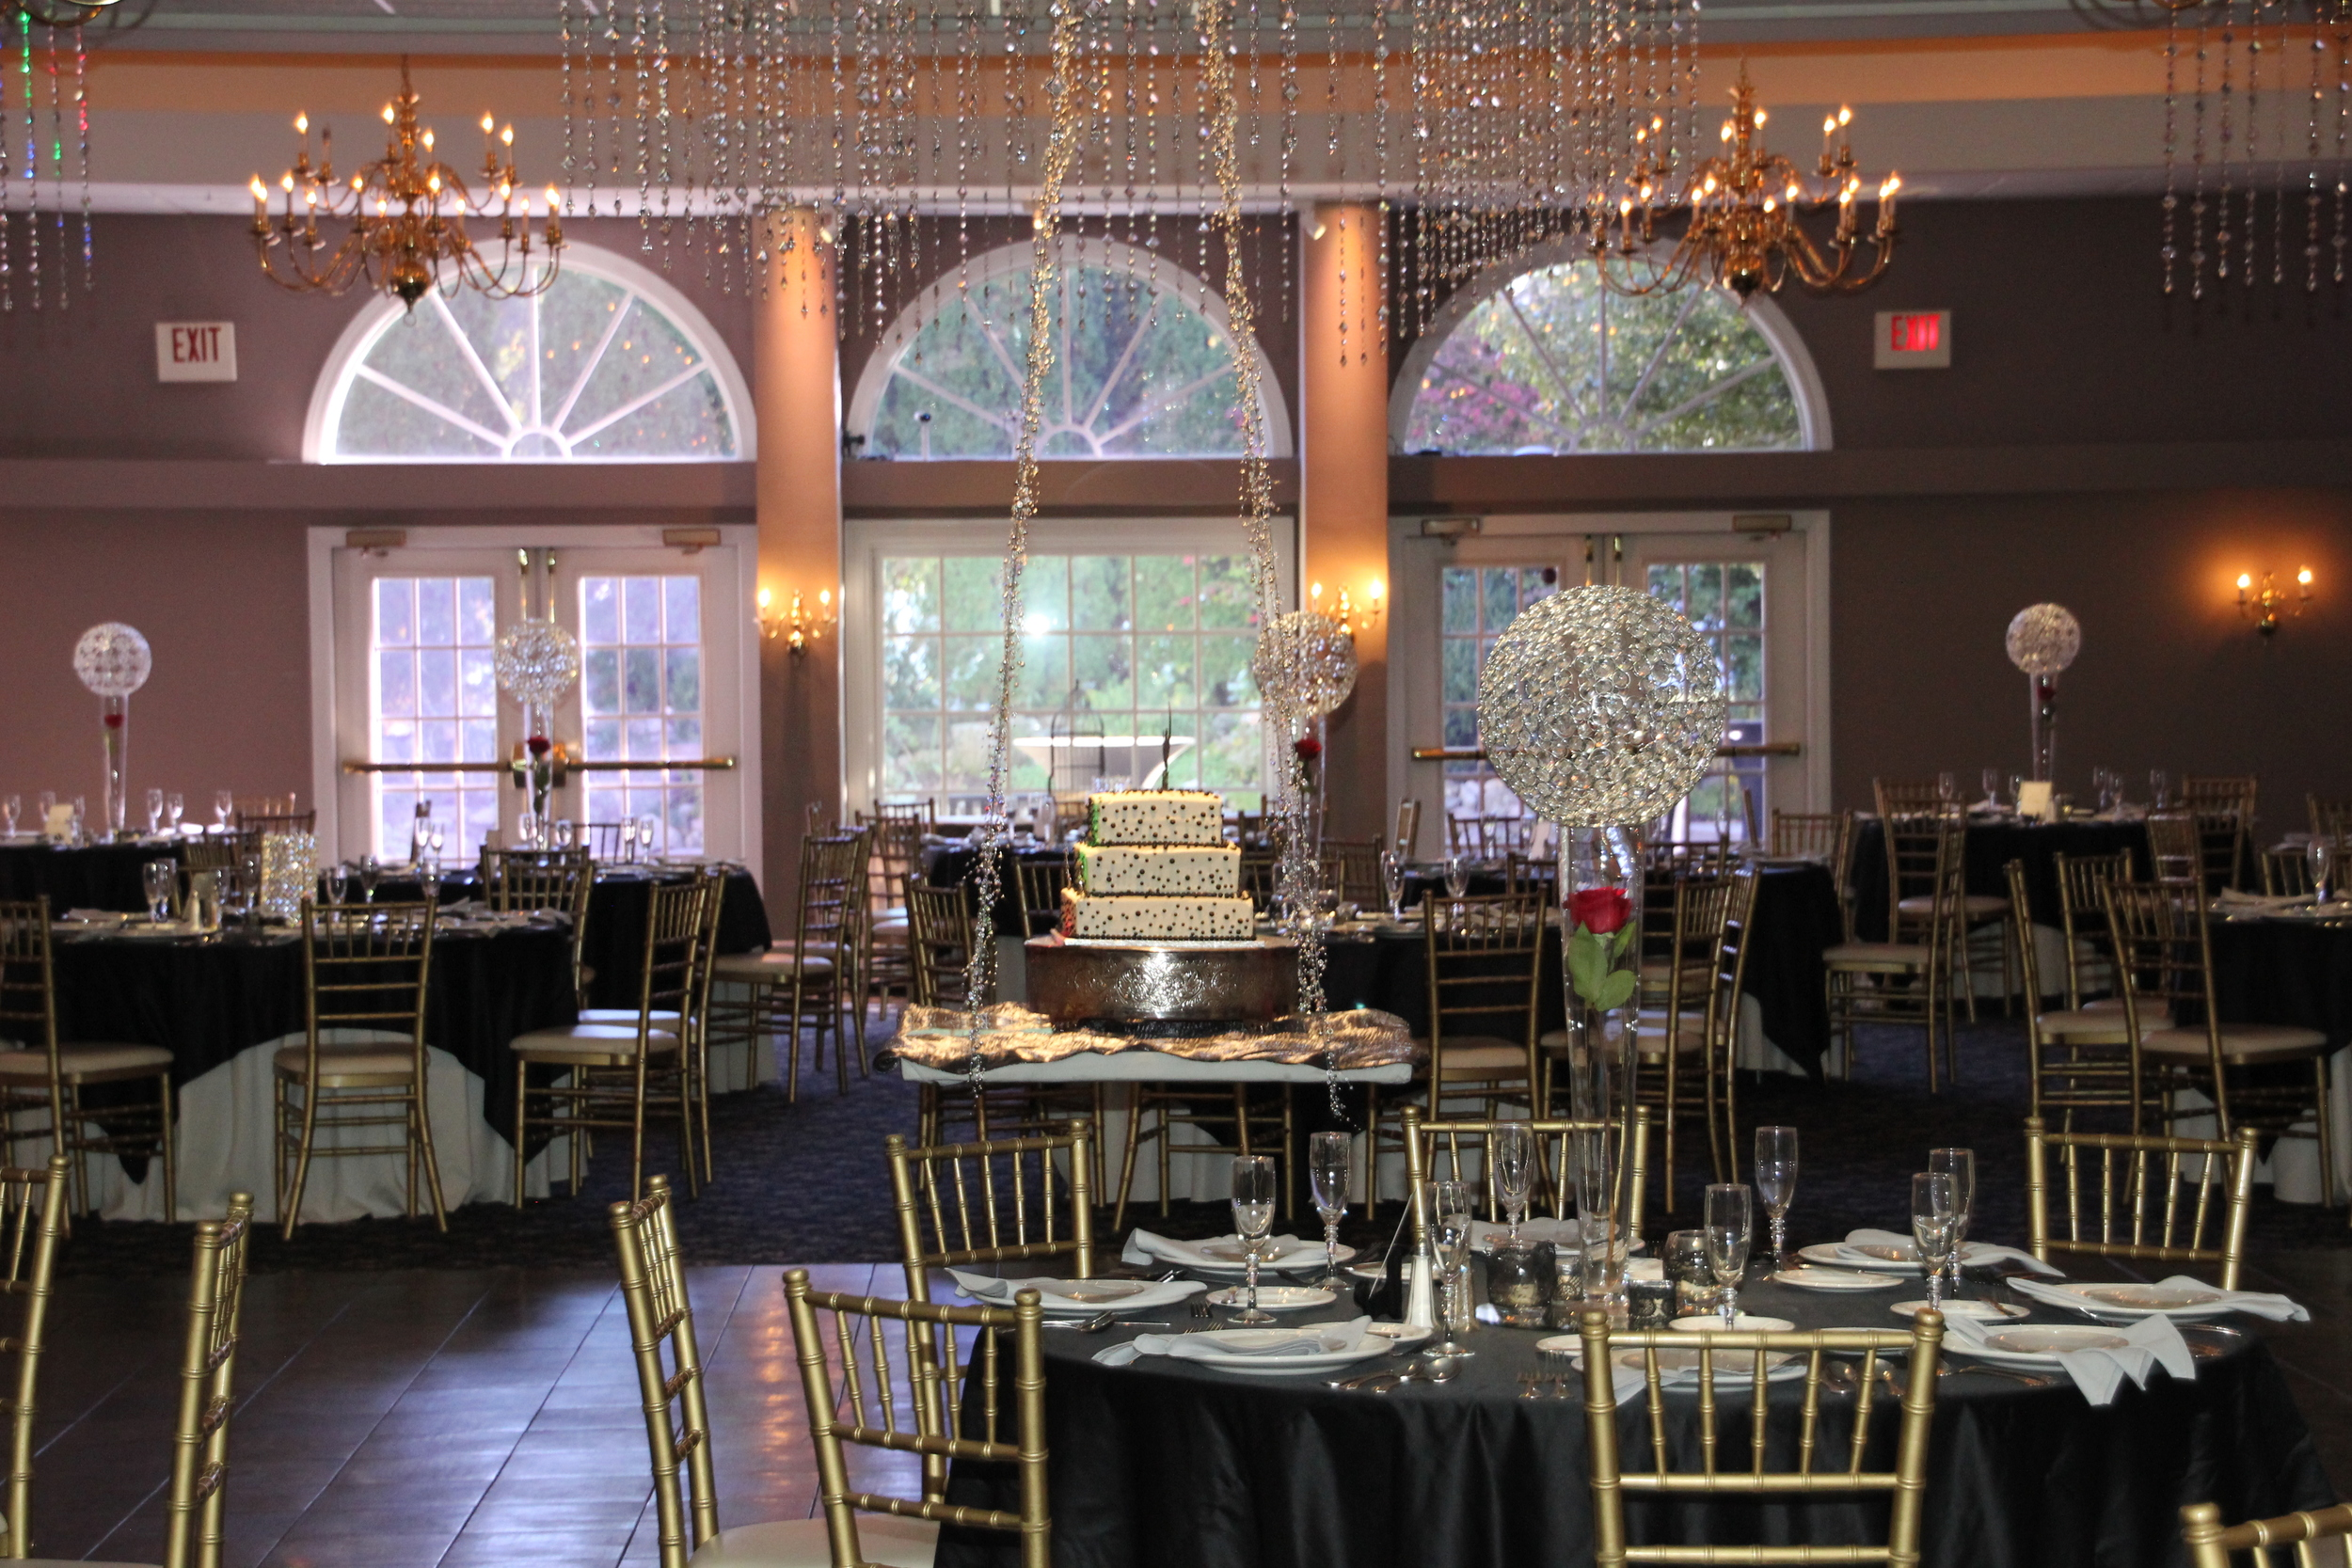 Aces and Eights ceiling with hanging cake and Black Satin tablecloths